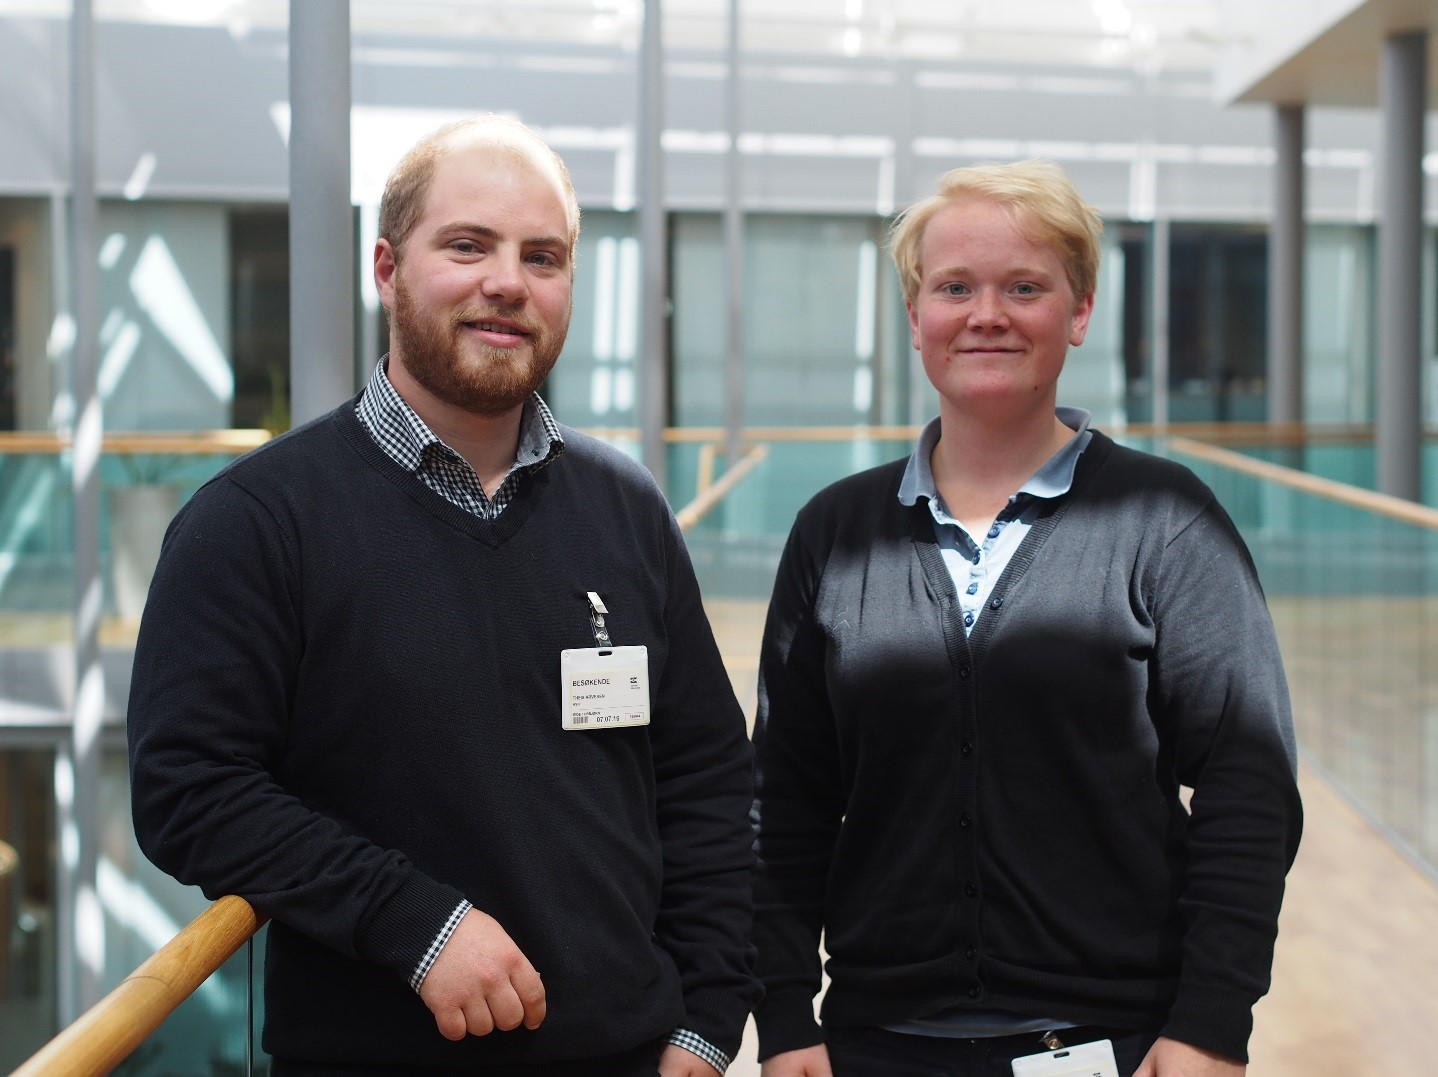 Theis Arvesen (24) and Maren Paulsen (24) completed their degrees within the nautical sciences at the University College of Southeast Norway in 2016 and 2015